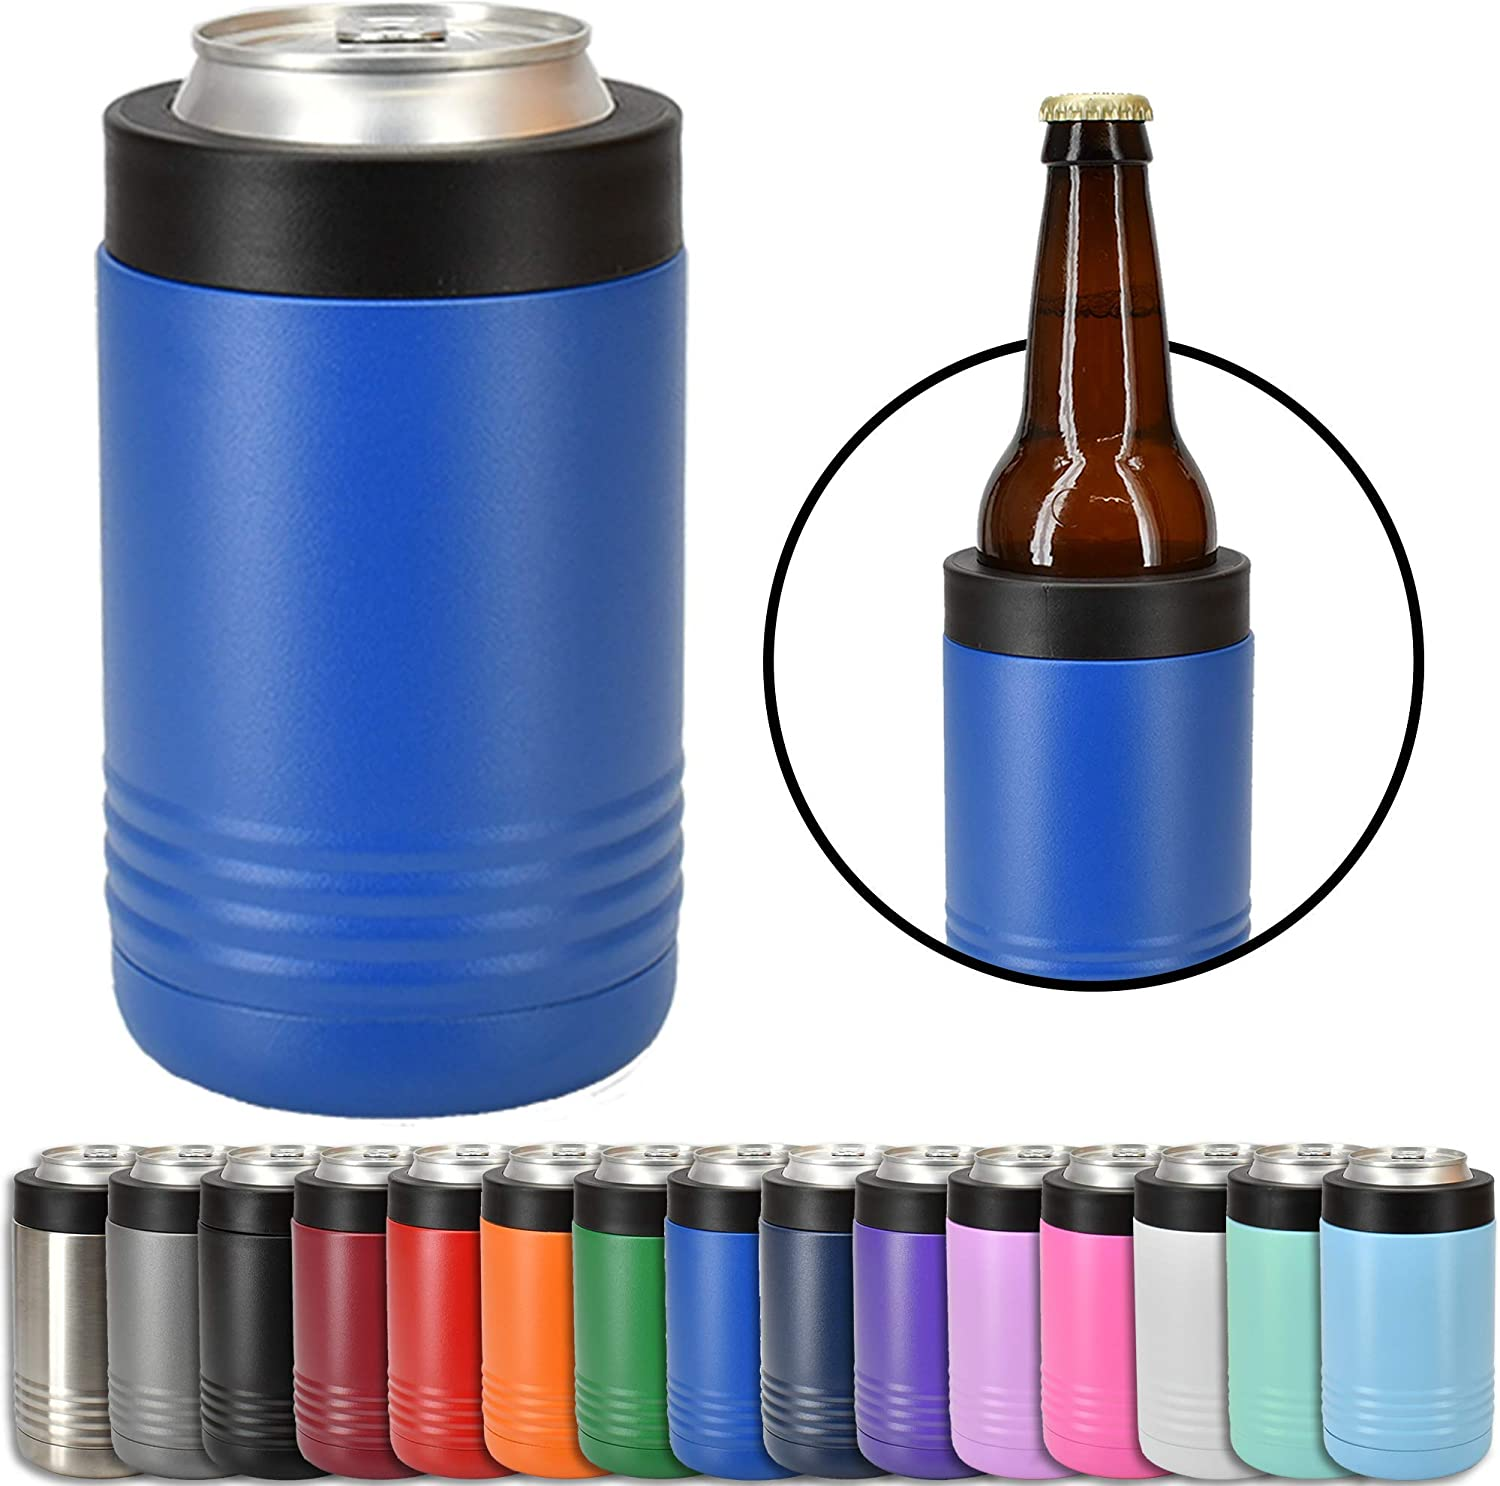 Clear Water Home Goods - 12 oz Stainless Steel Double Wall Vacuum Insulated Can or Bottle Cooler Keeps Beverage Cold for Hours - Powder Coated Royal Blue